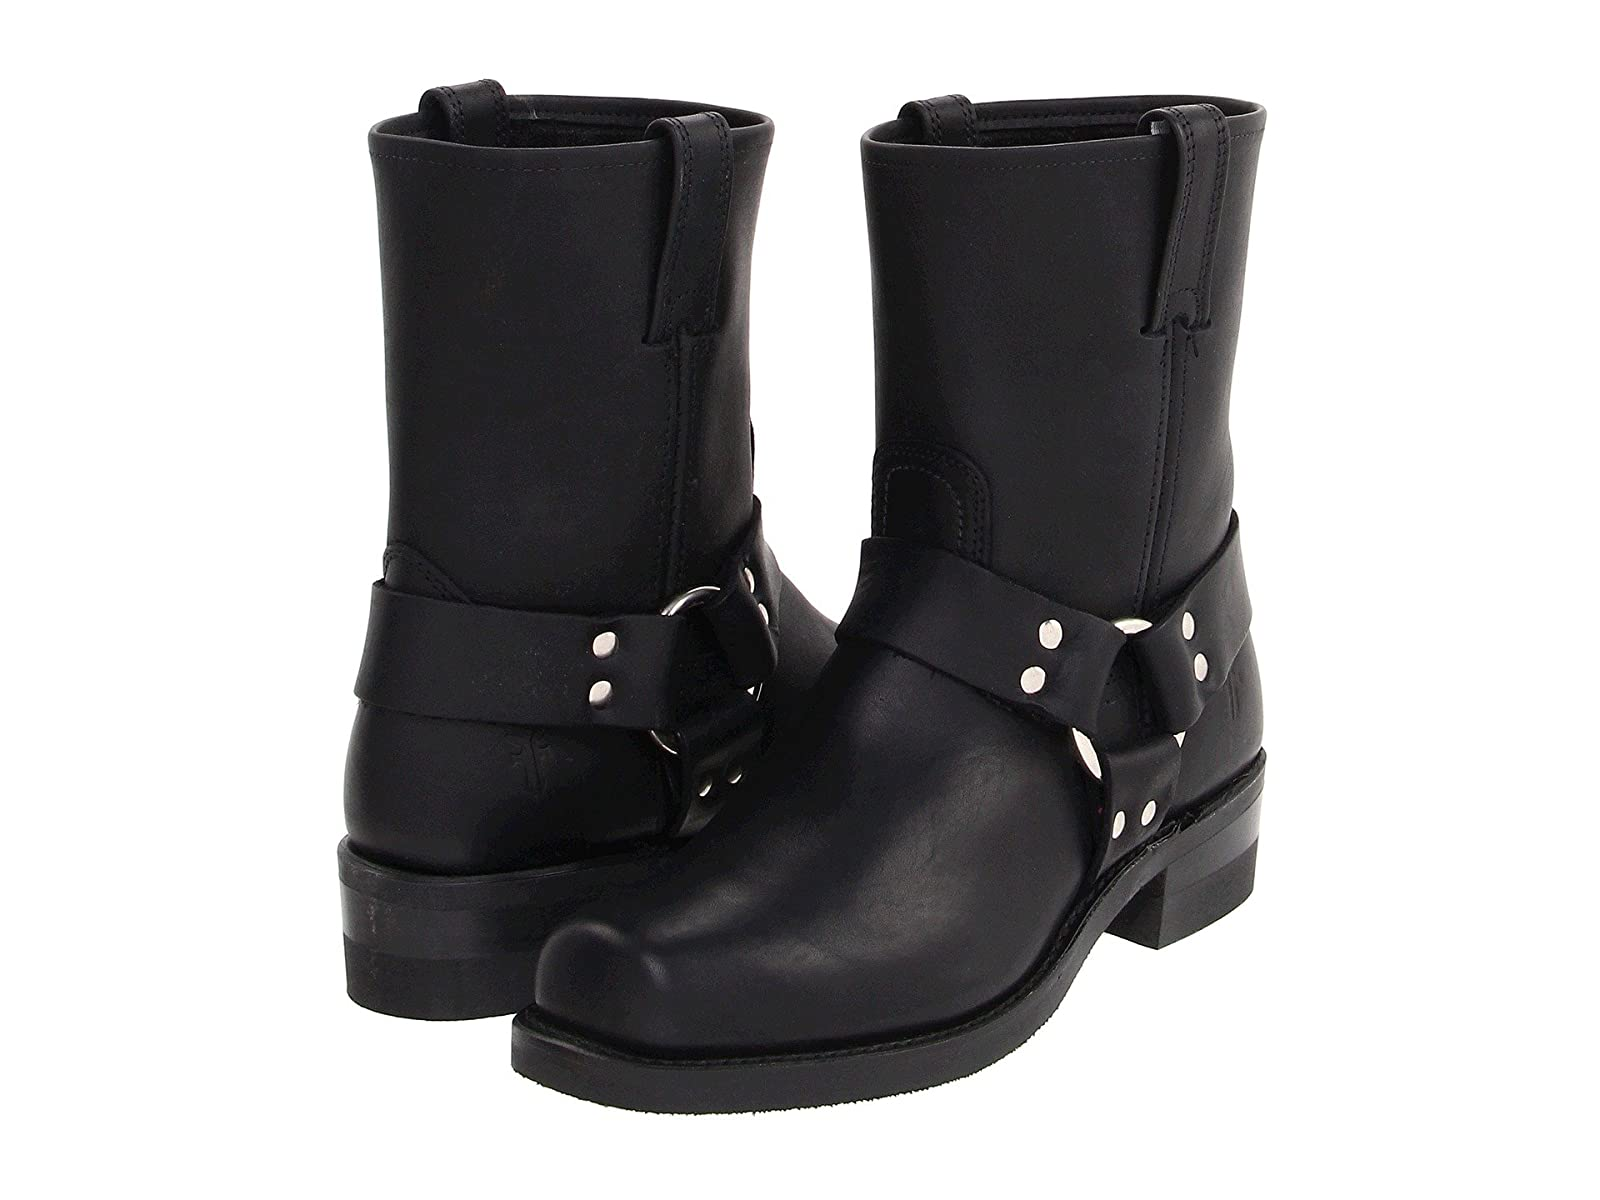 Frye Harness 8RAffordable and distinctive shoes